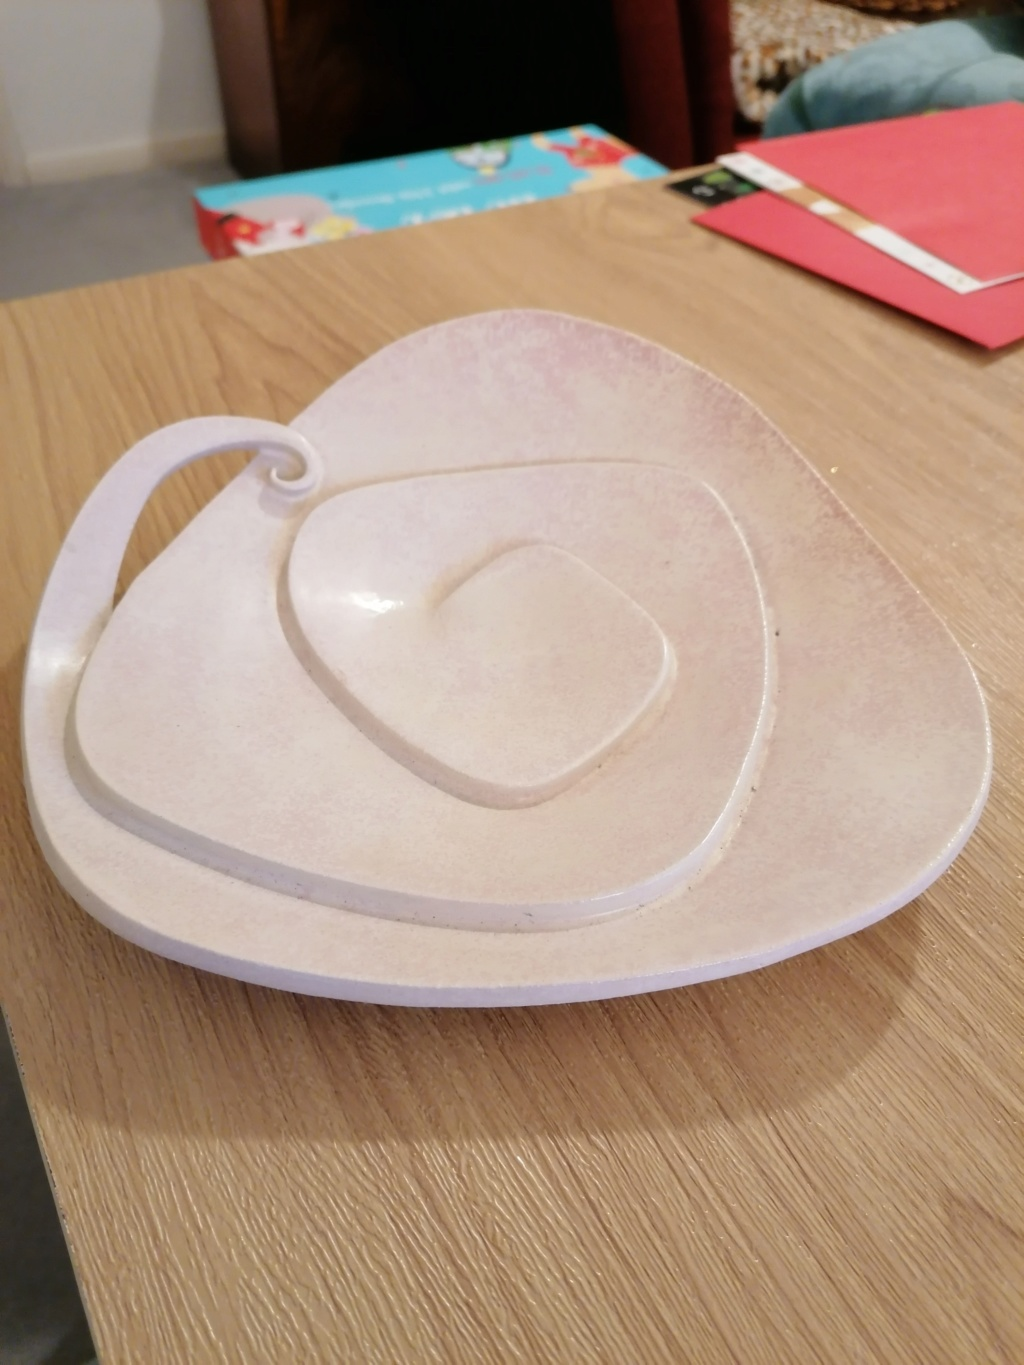 INDENTIFYING ASSISTANCE REQUIRED PLEASE - SOAPSTONE DISH? Img_2014